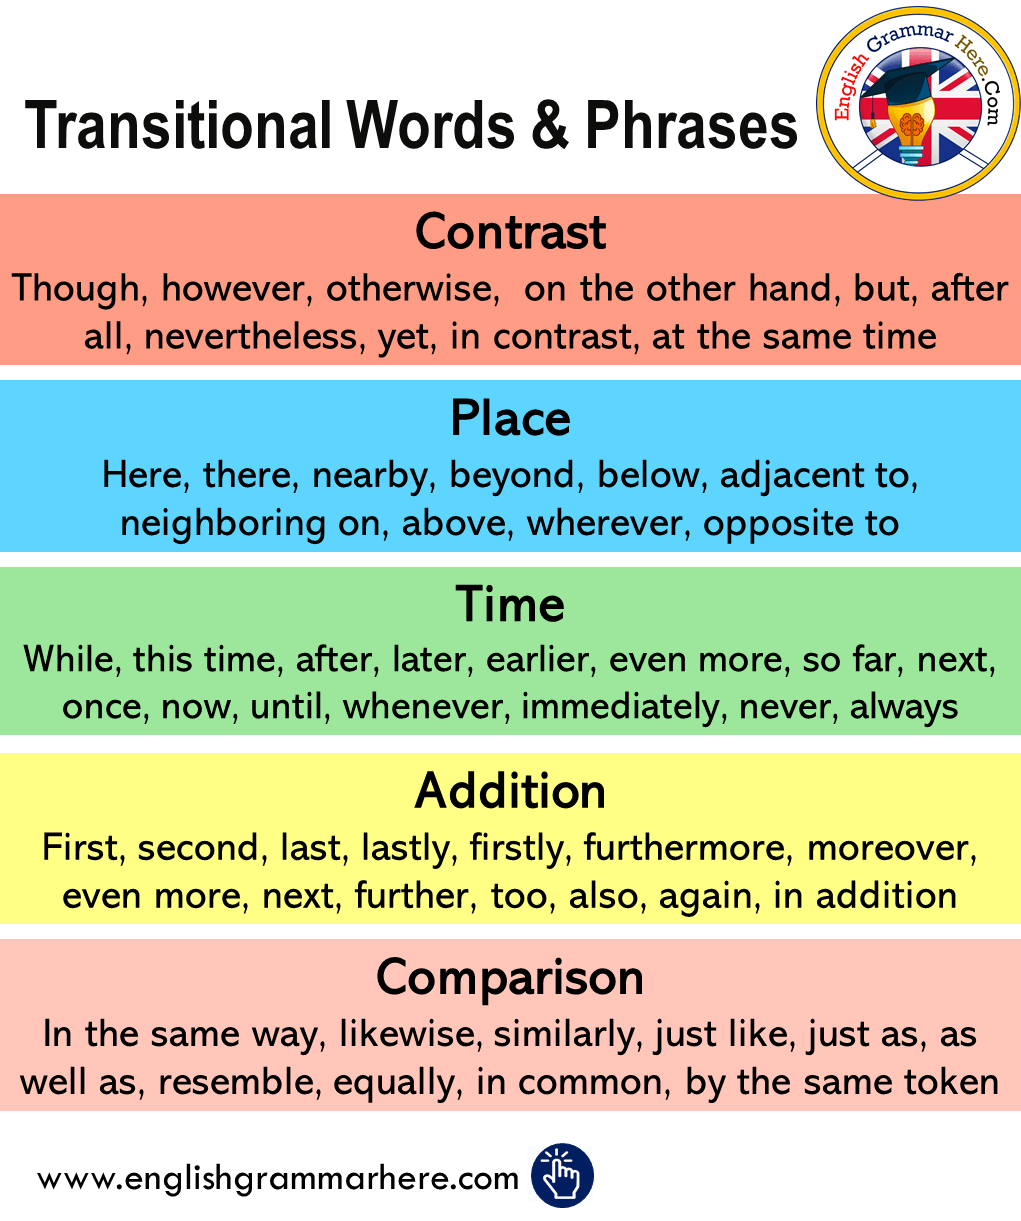 Transitional Words and Phrases in English